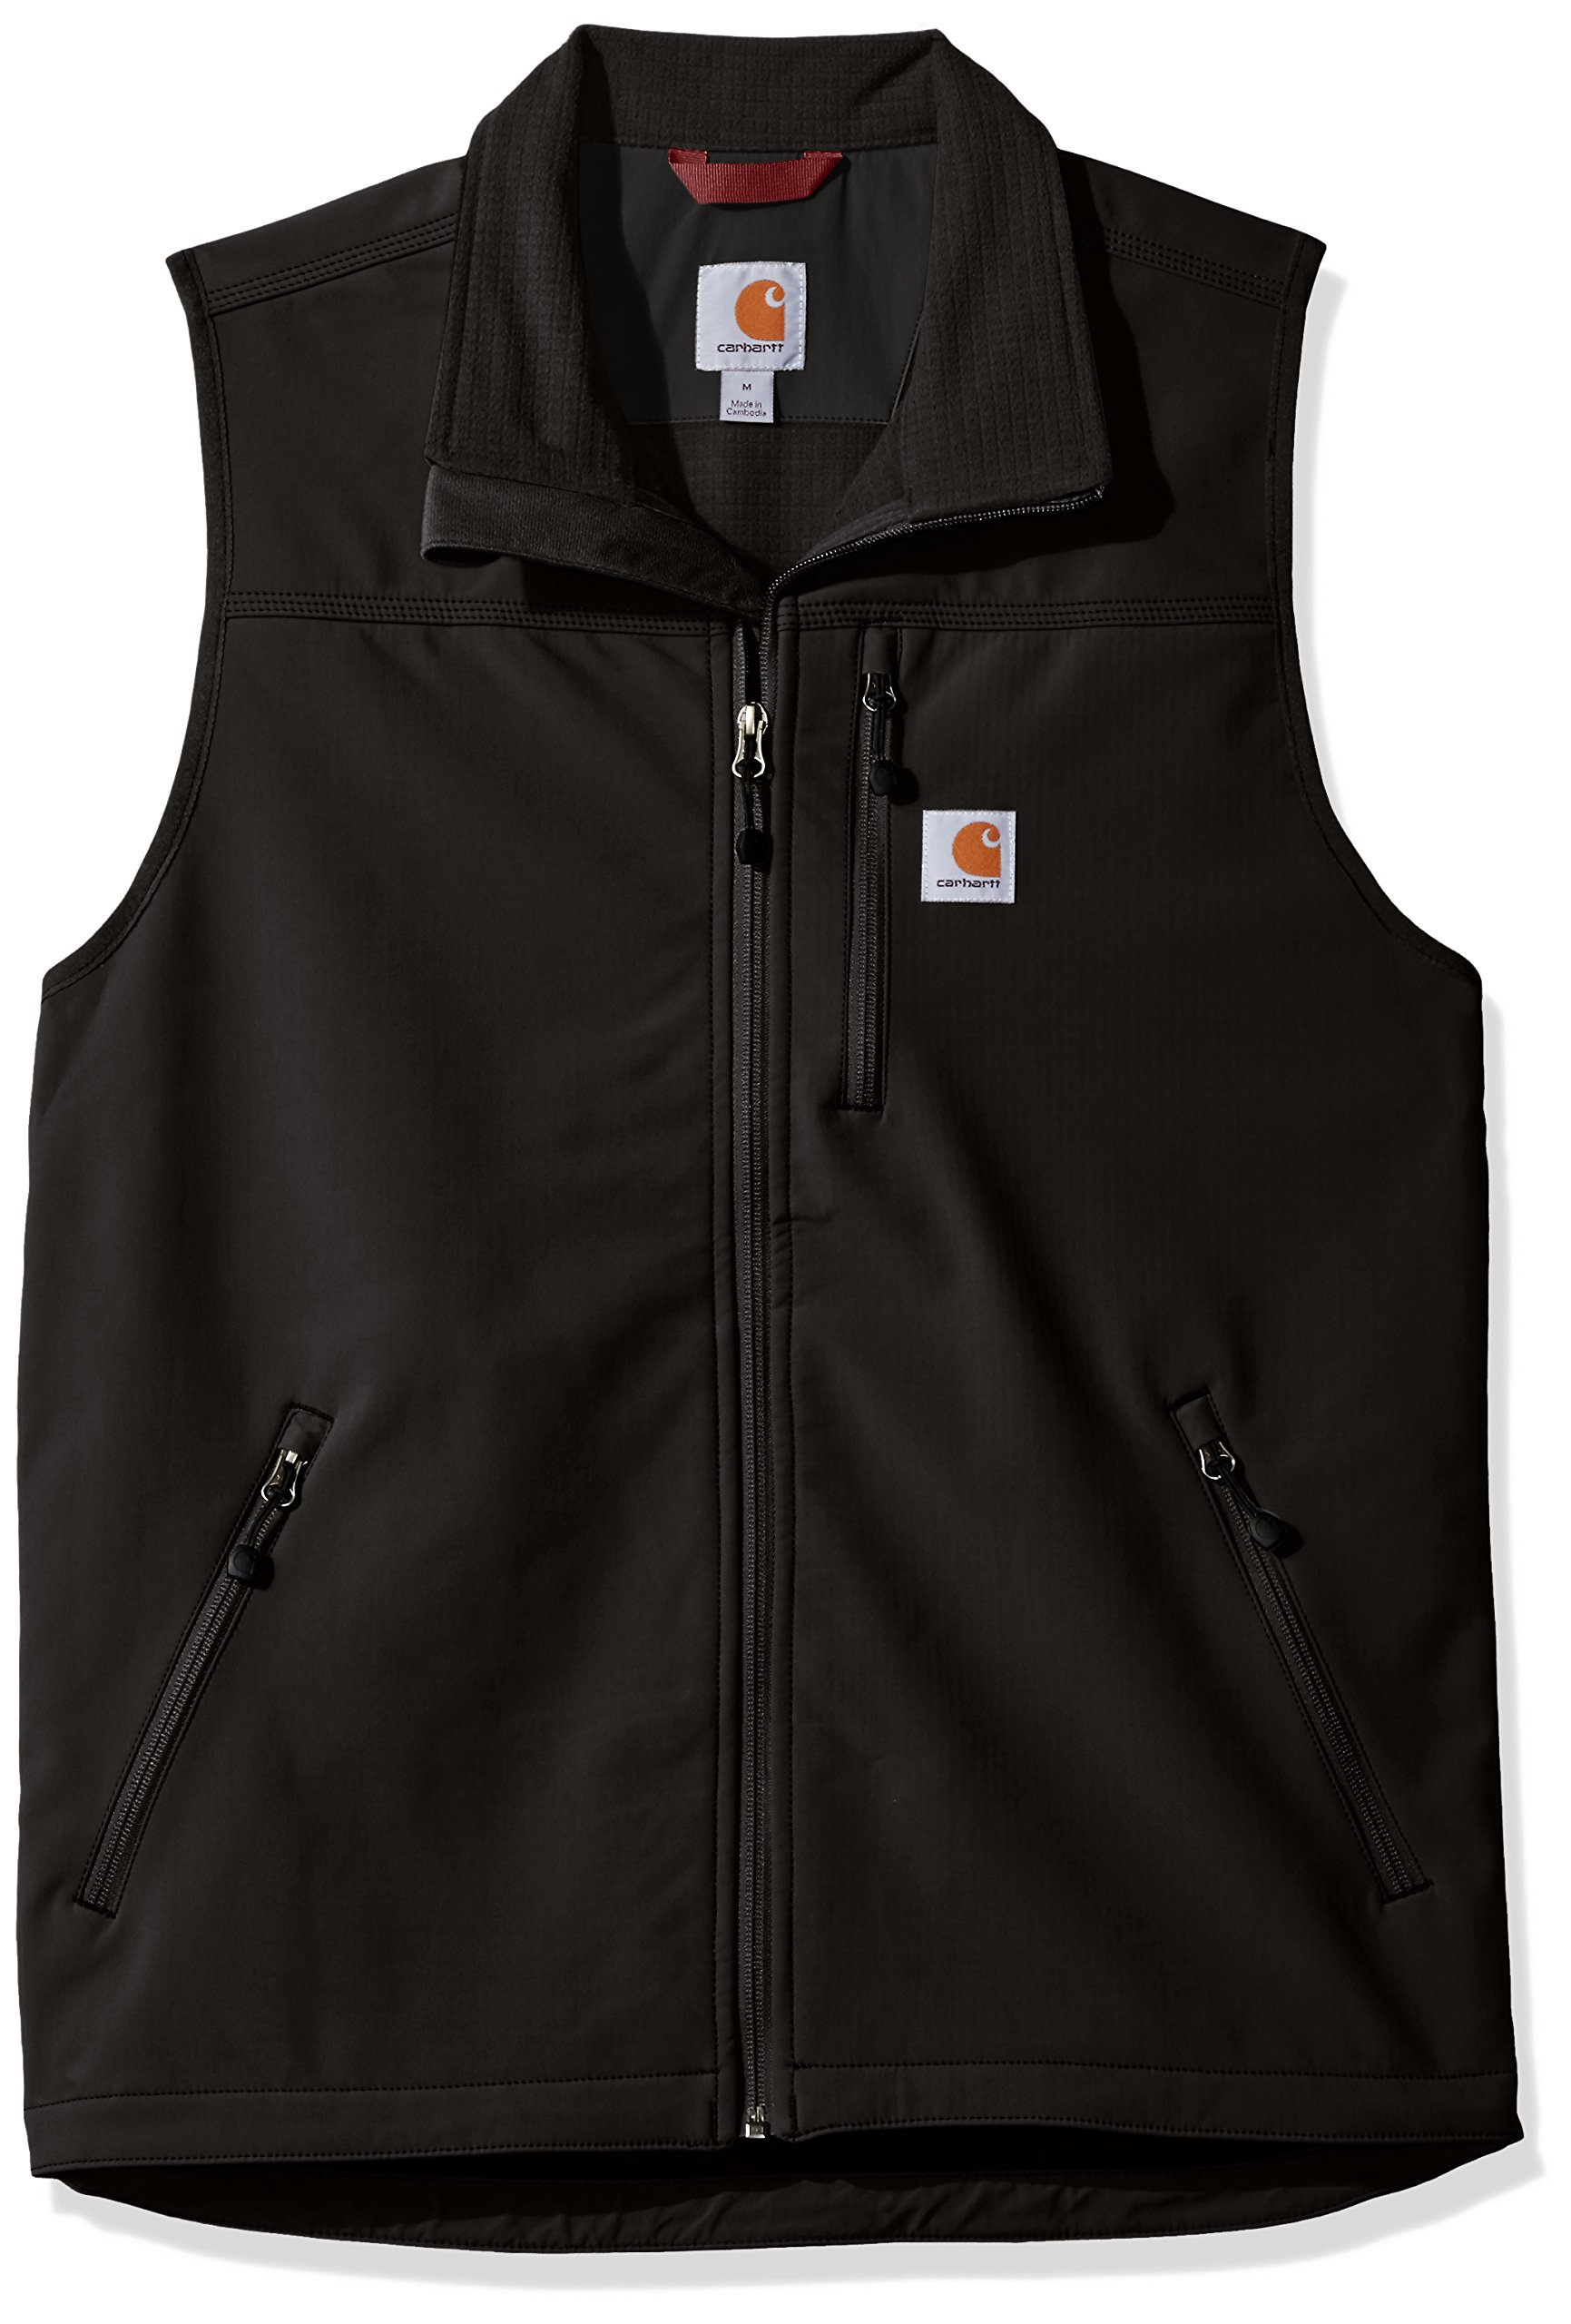 Carhartt Men's Denwood Vest, Black, X-Large